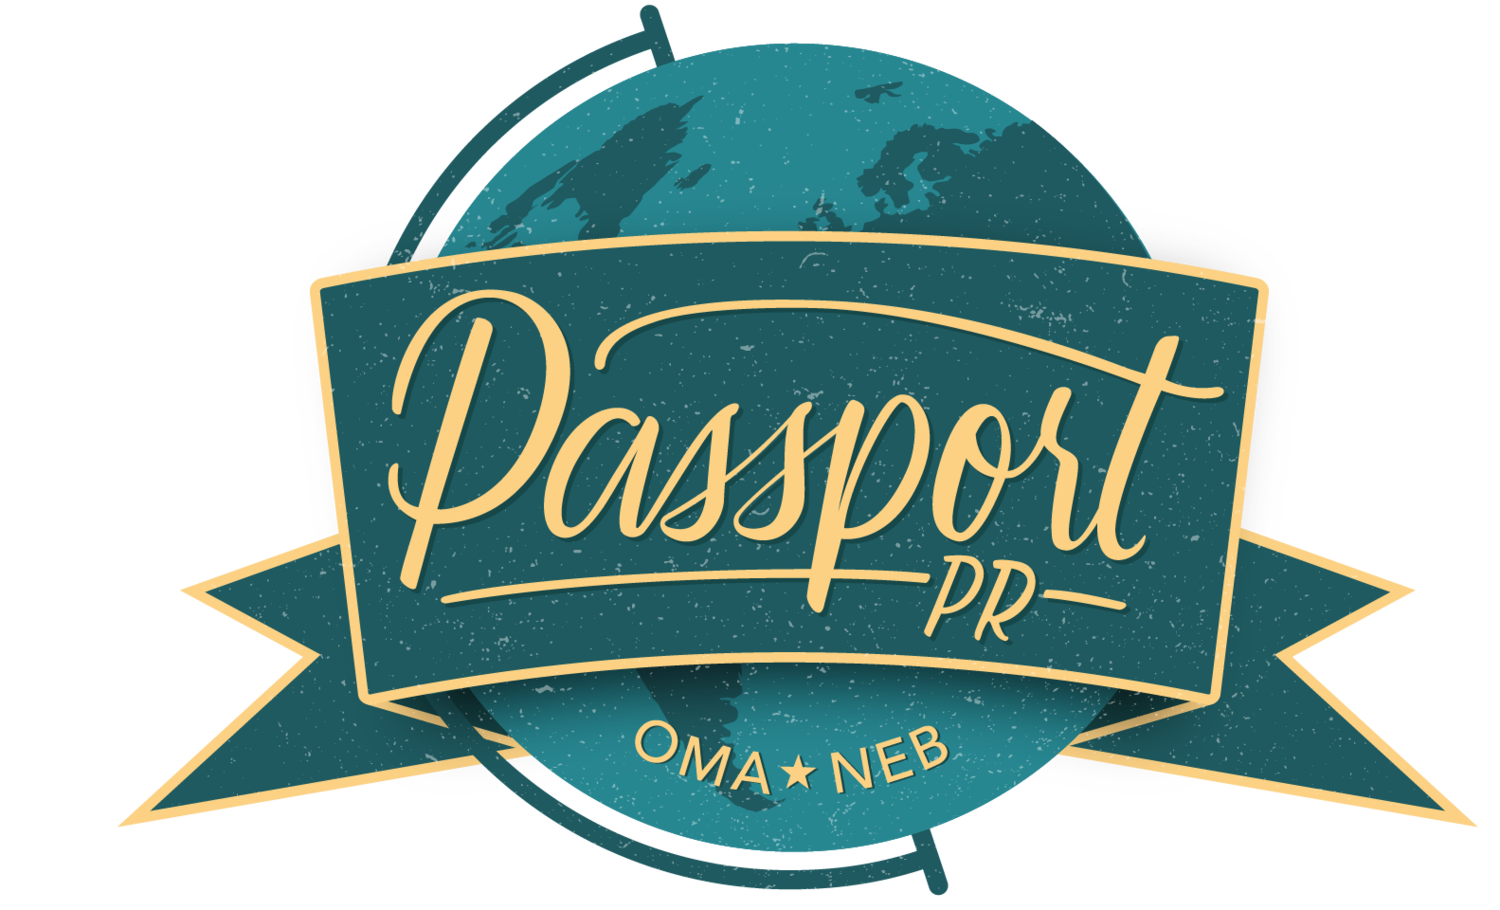 Passport Public Relations